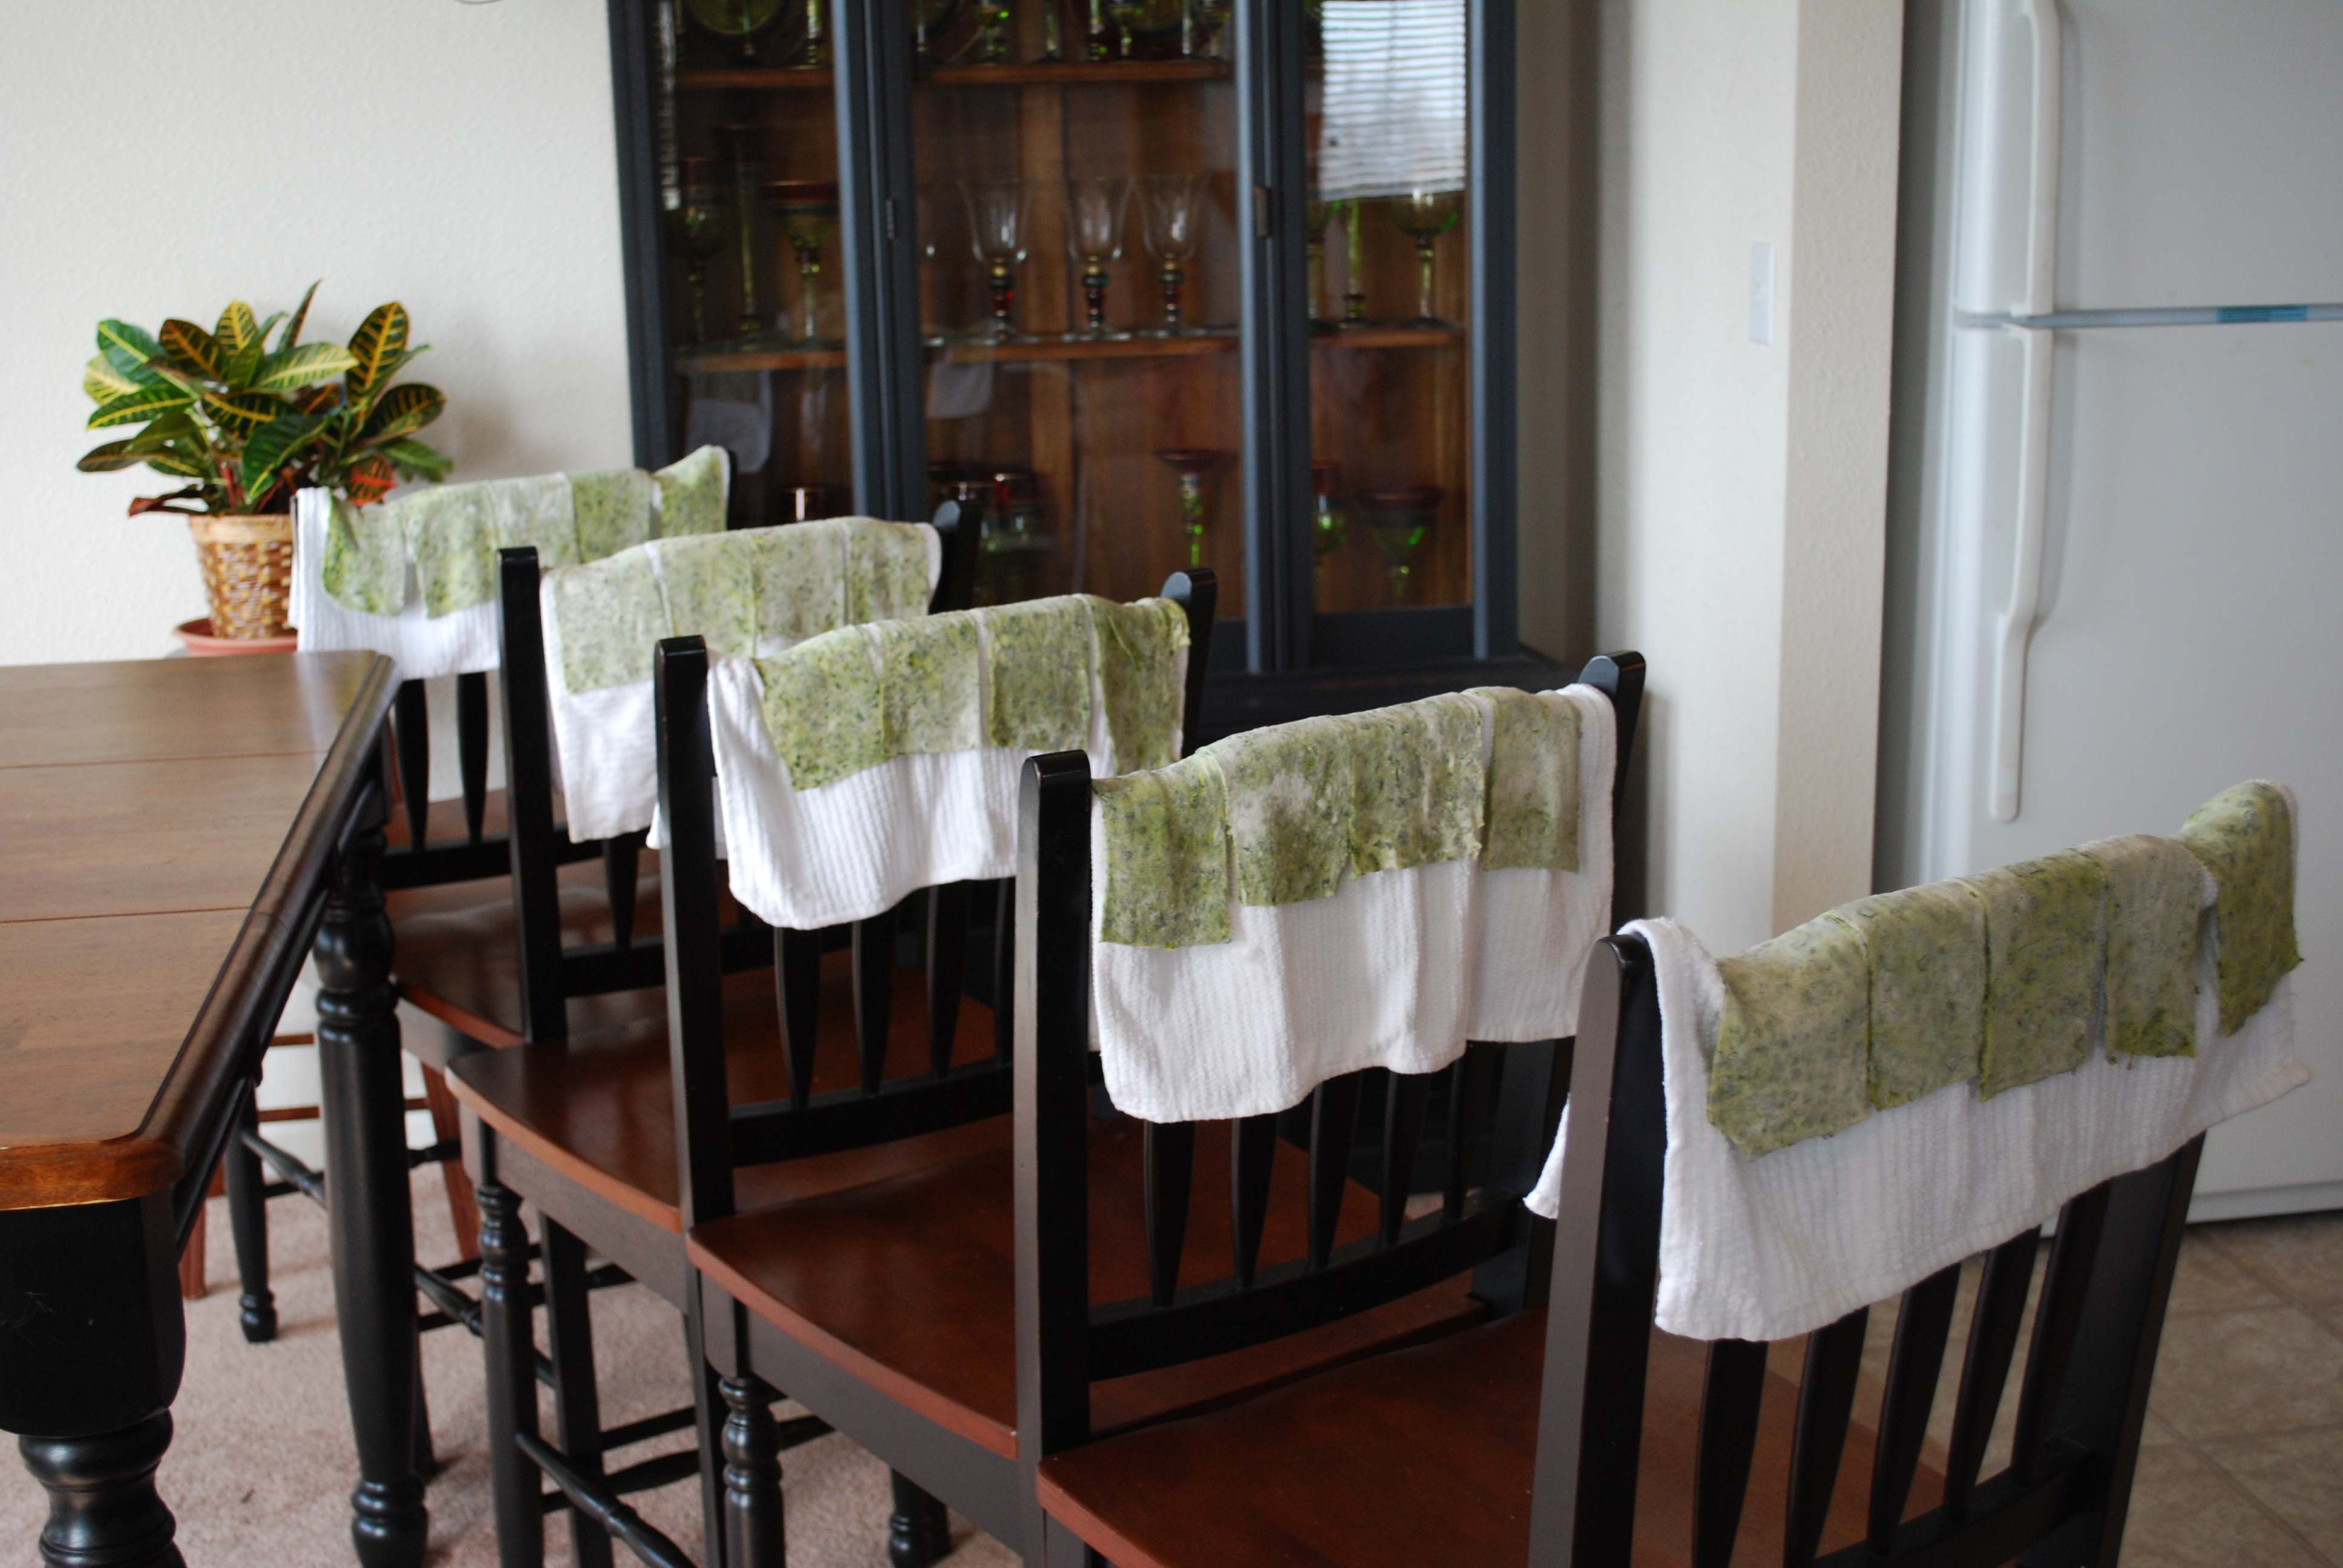 Pasta drying over the backs of dining room chairs!